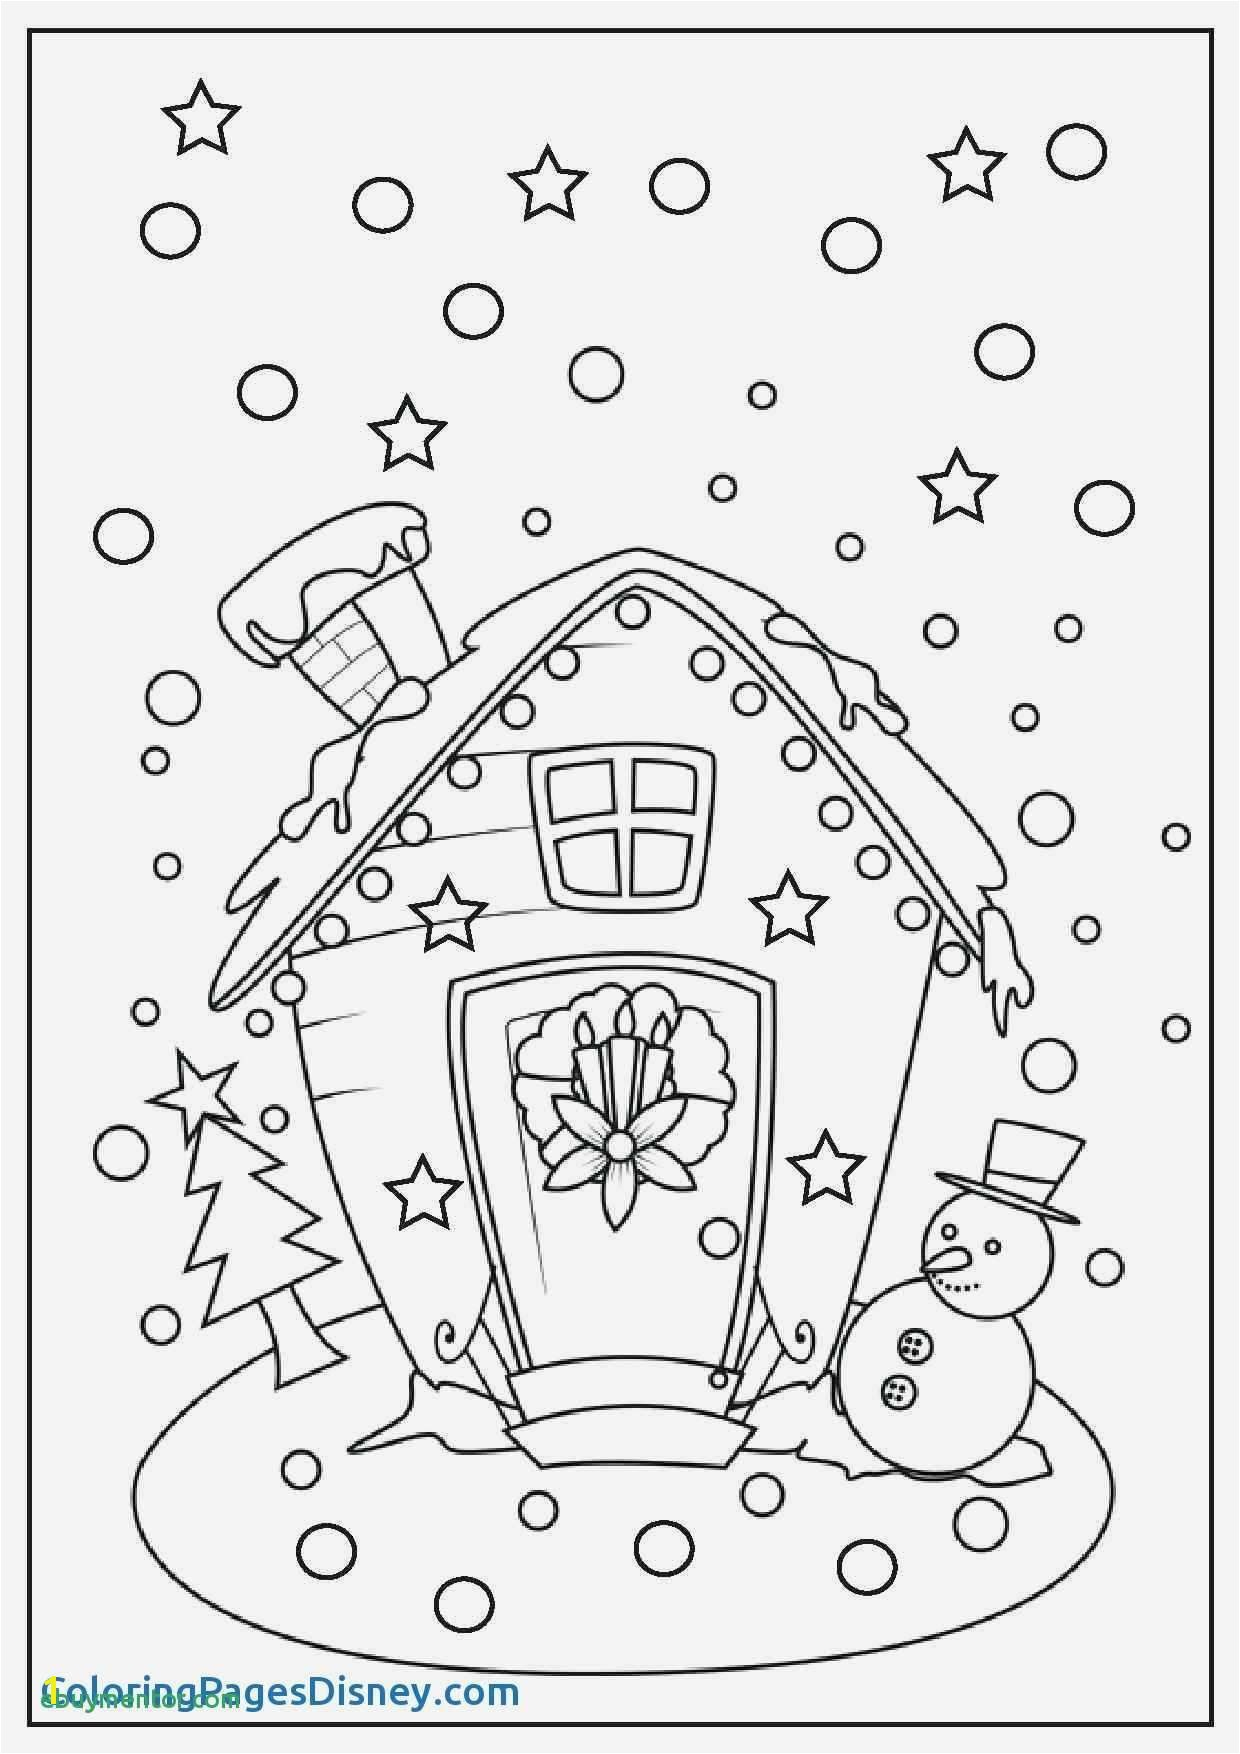 Free Kids Christmas Coloring Pages Free Christmas Coloring Pages for Kids Cool Coloring Printables 0d